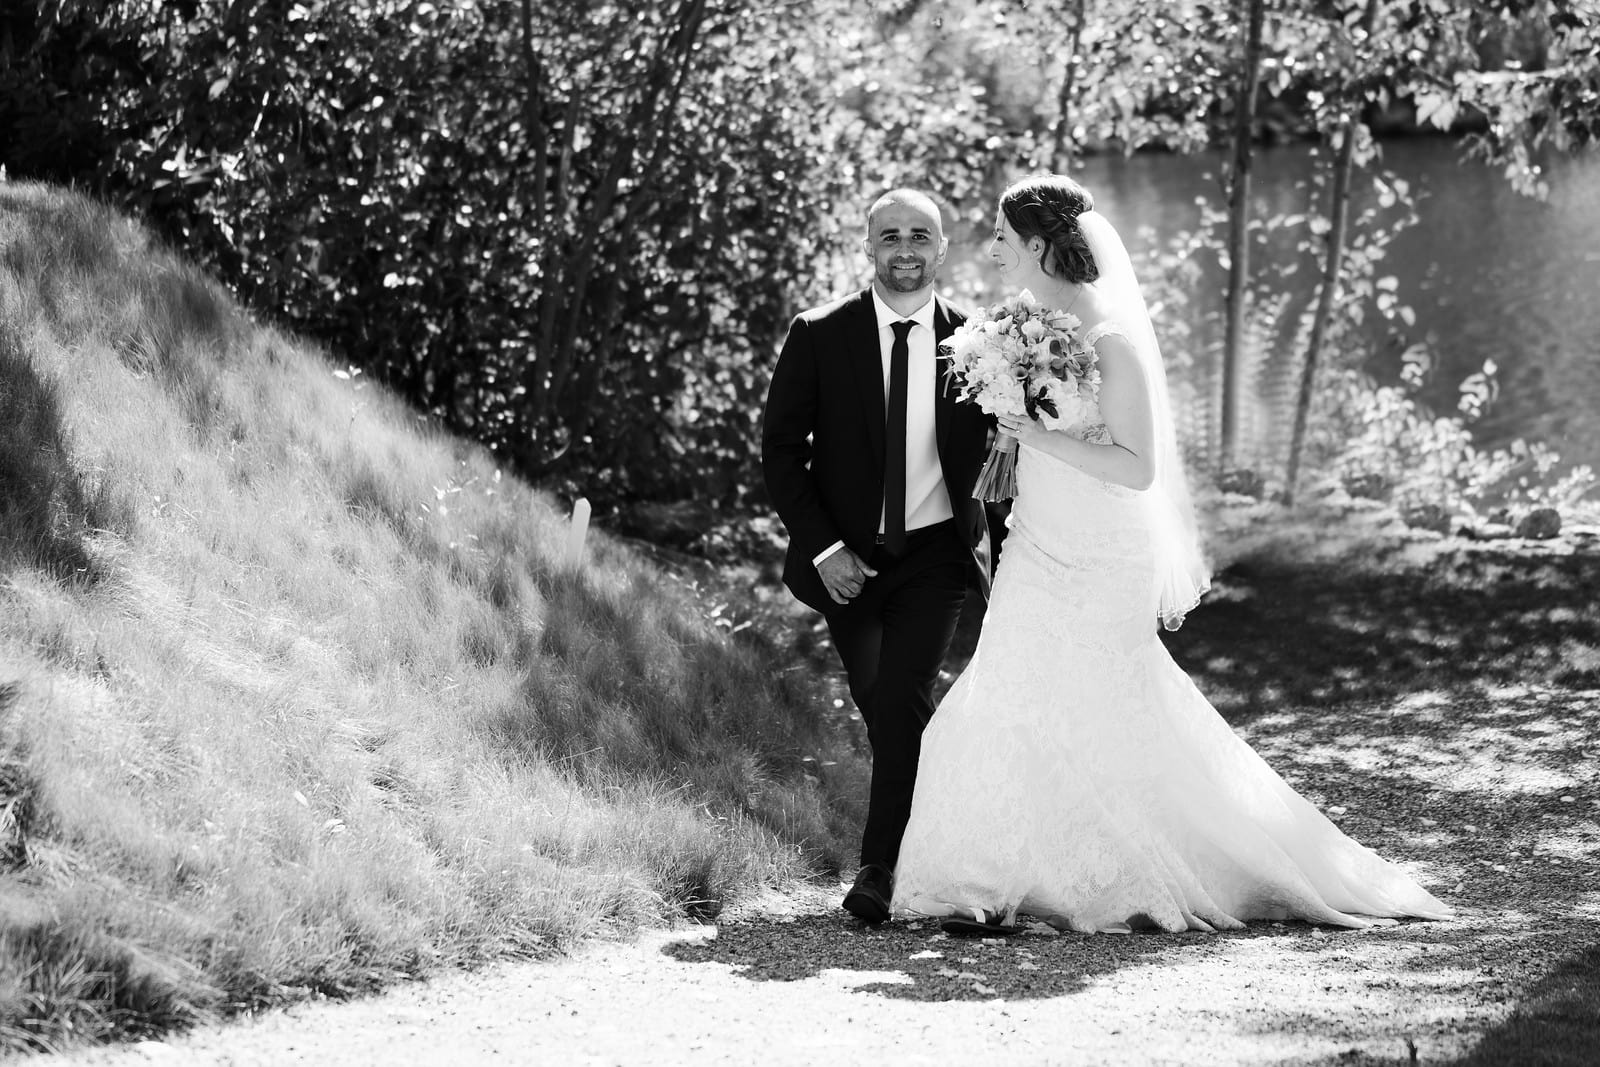 First walk together as married couple